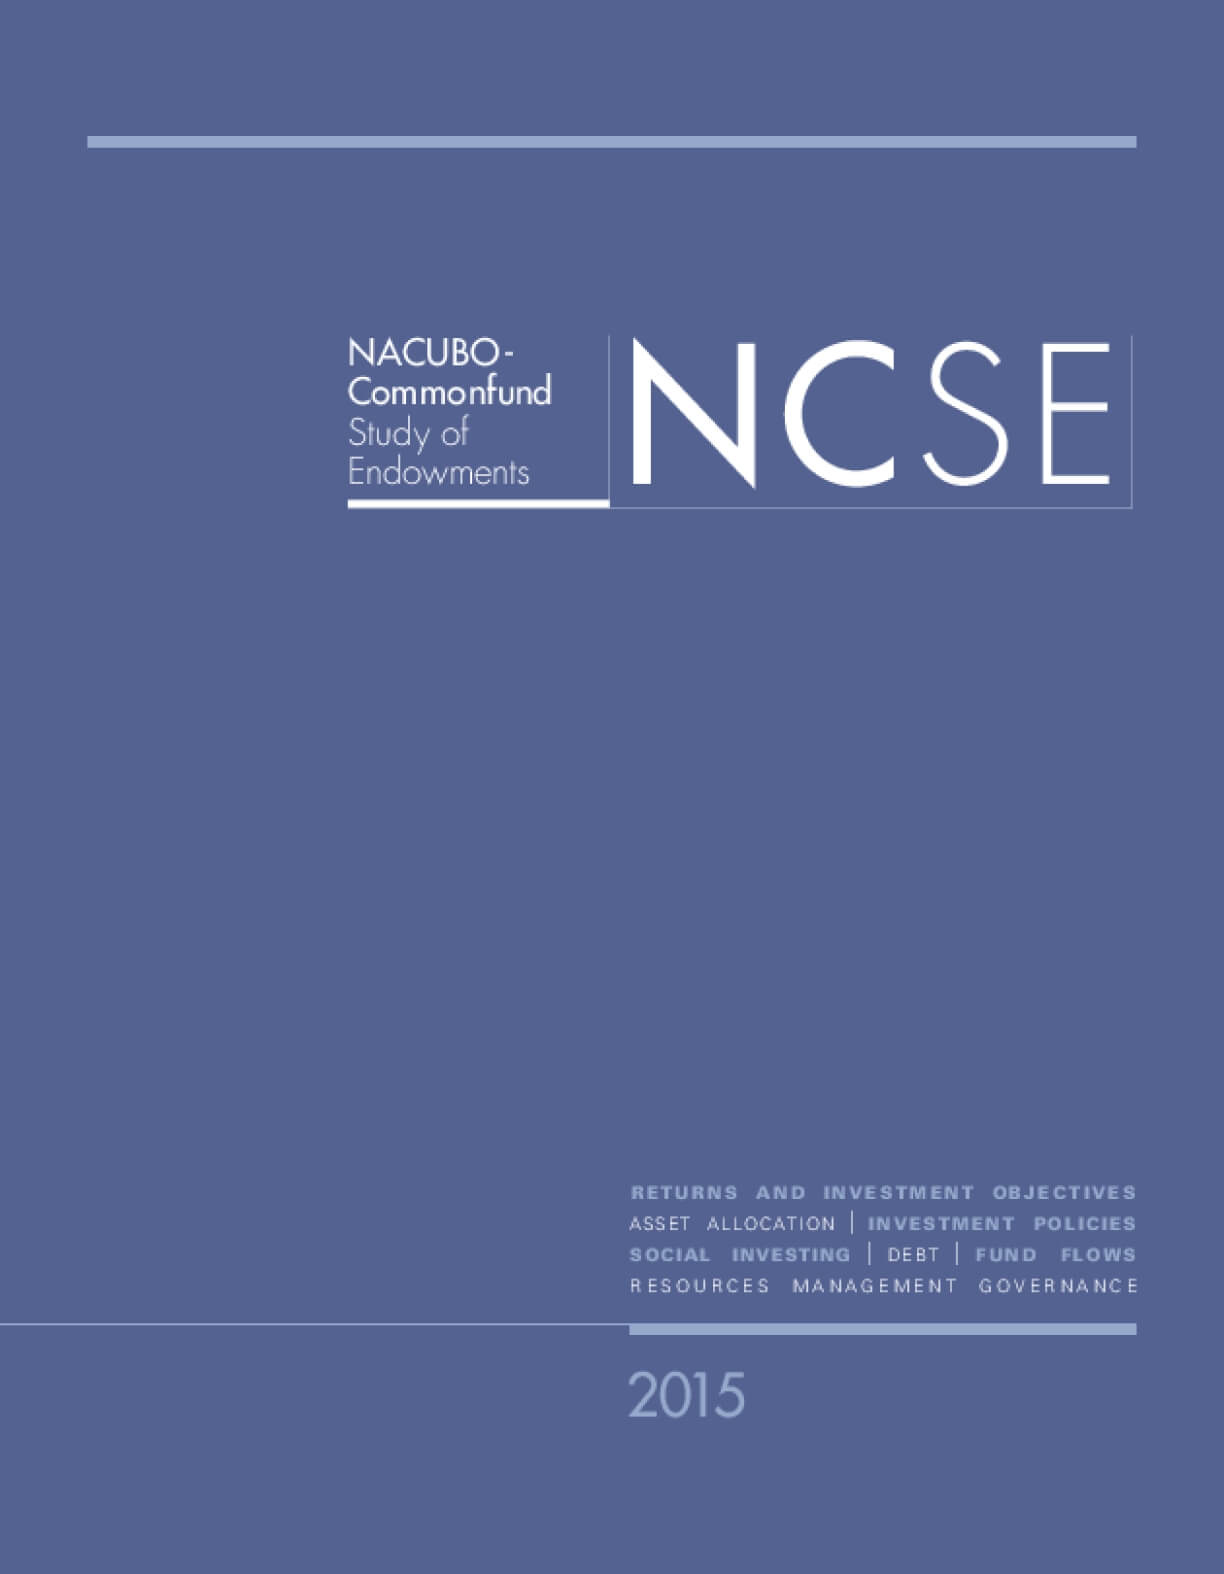 NACUBO-Commonfund Study of Endowments (NCSE)